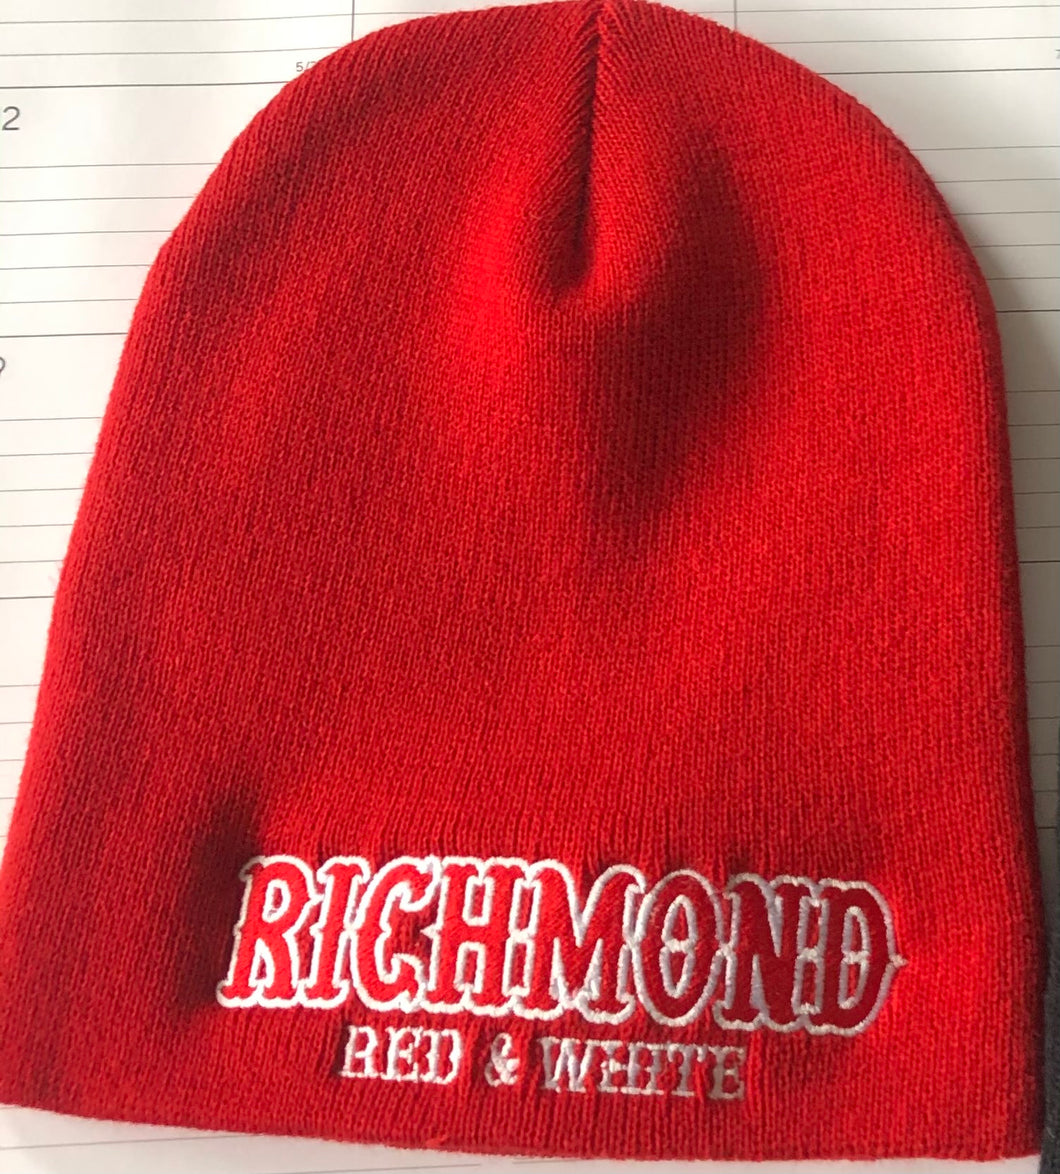 Red beanie with embroidered RICHMOND RED &WHITE on front